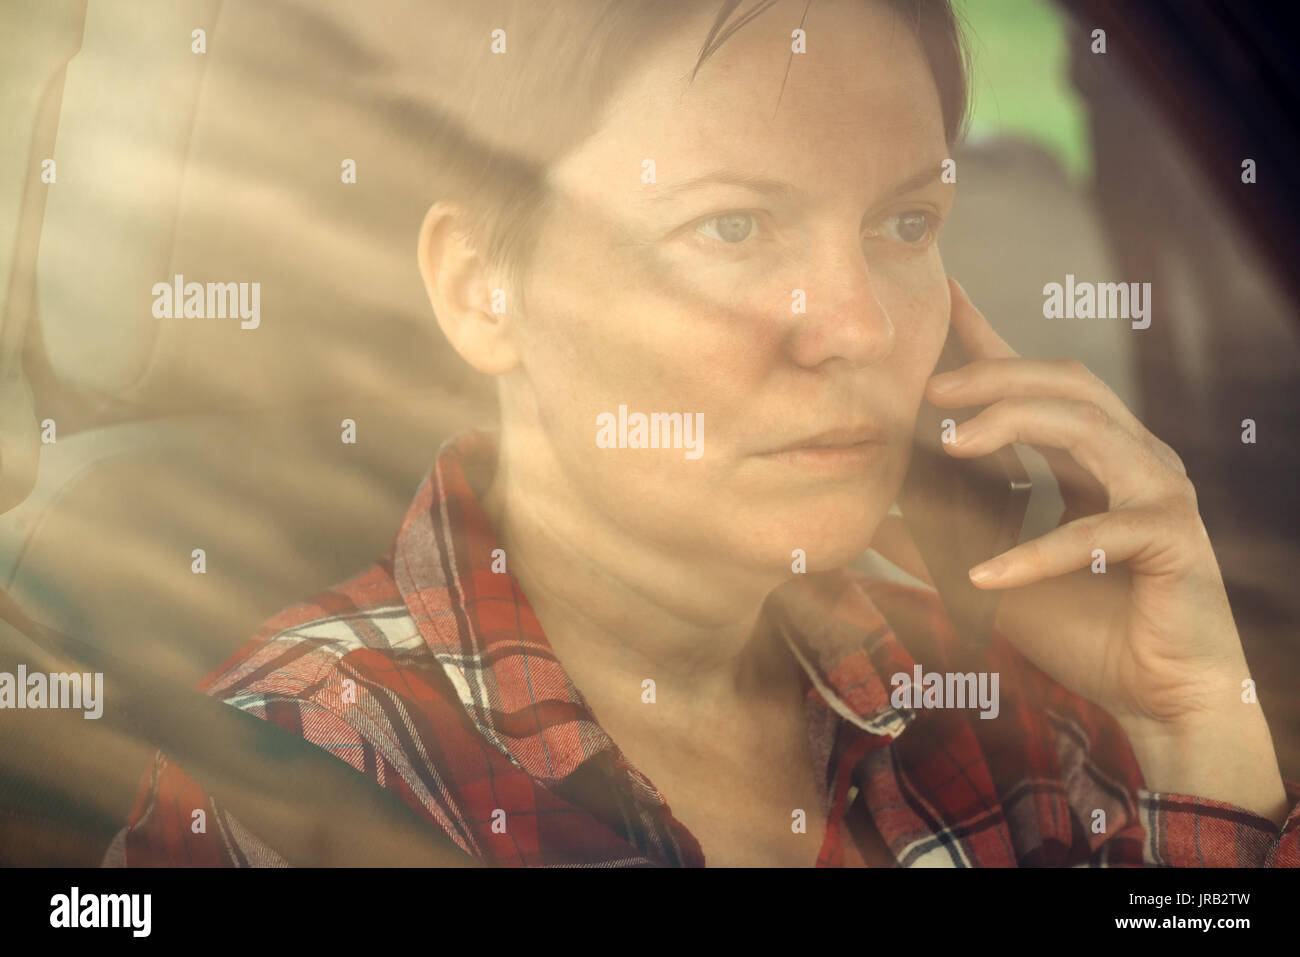 Worried woman talking on mobile phone in car, concerned adult caucasian female person during telephone conversation - Stock Image